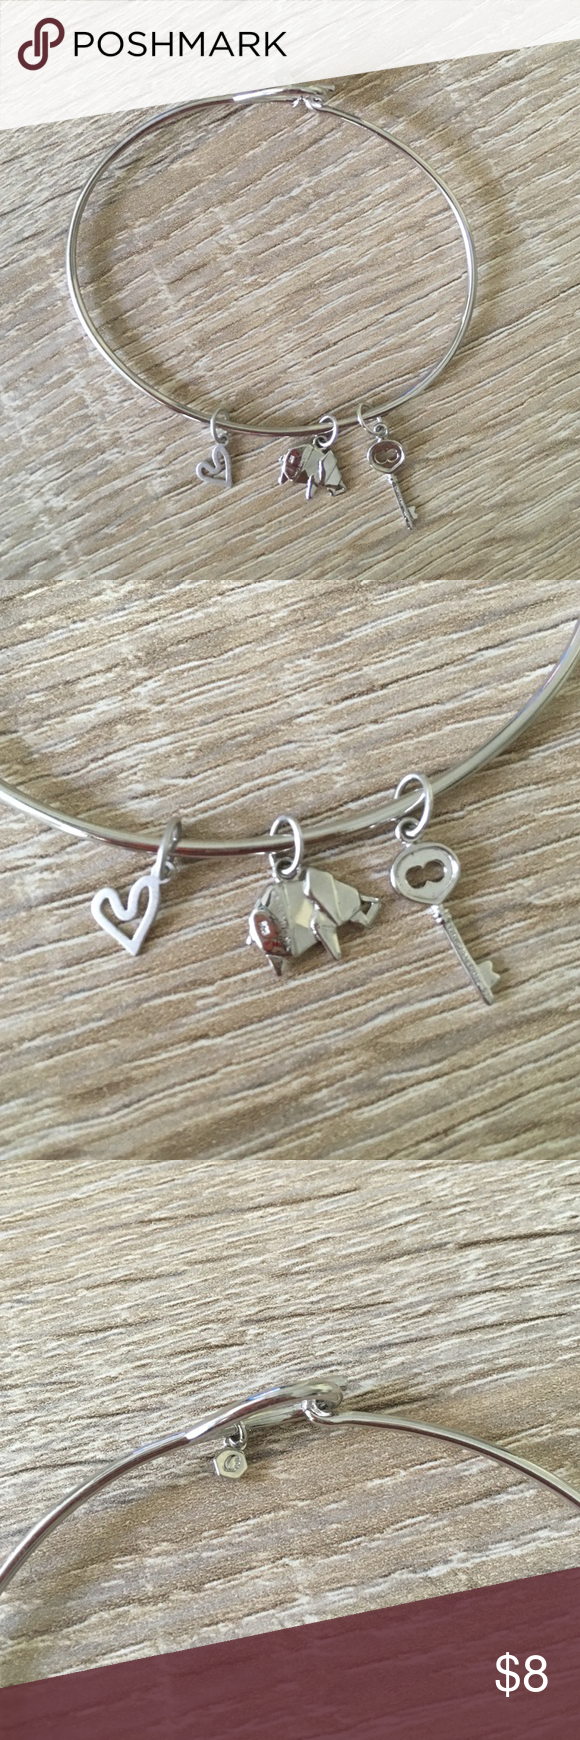 Silver Renewal Bracelet Cute silver bracelet with charms- open heart, elephant, and key, Renewal Jewelry Bracelets